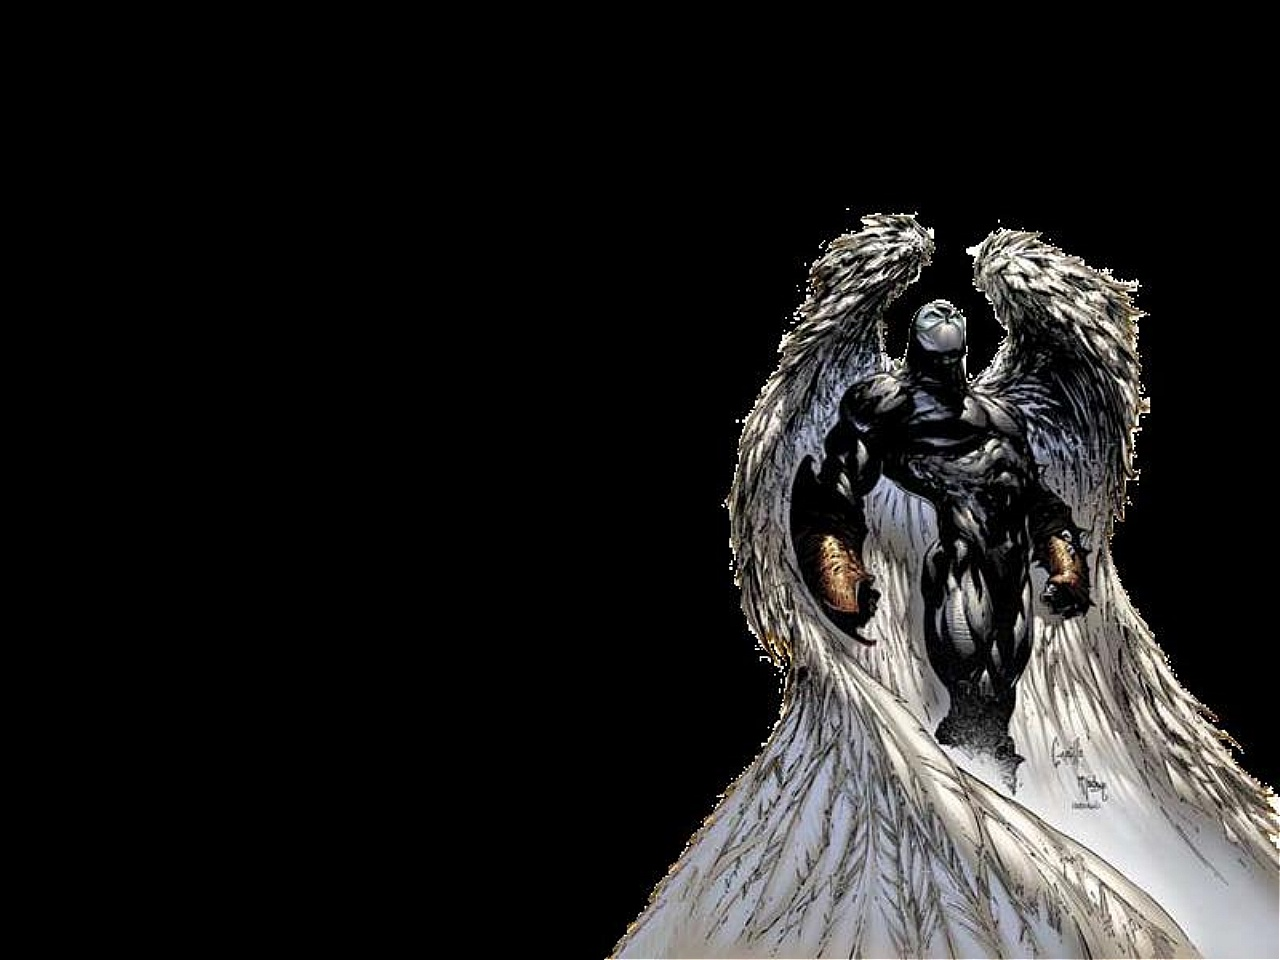 spawn wallpapers 1920x1080 - photo #36